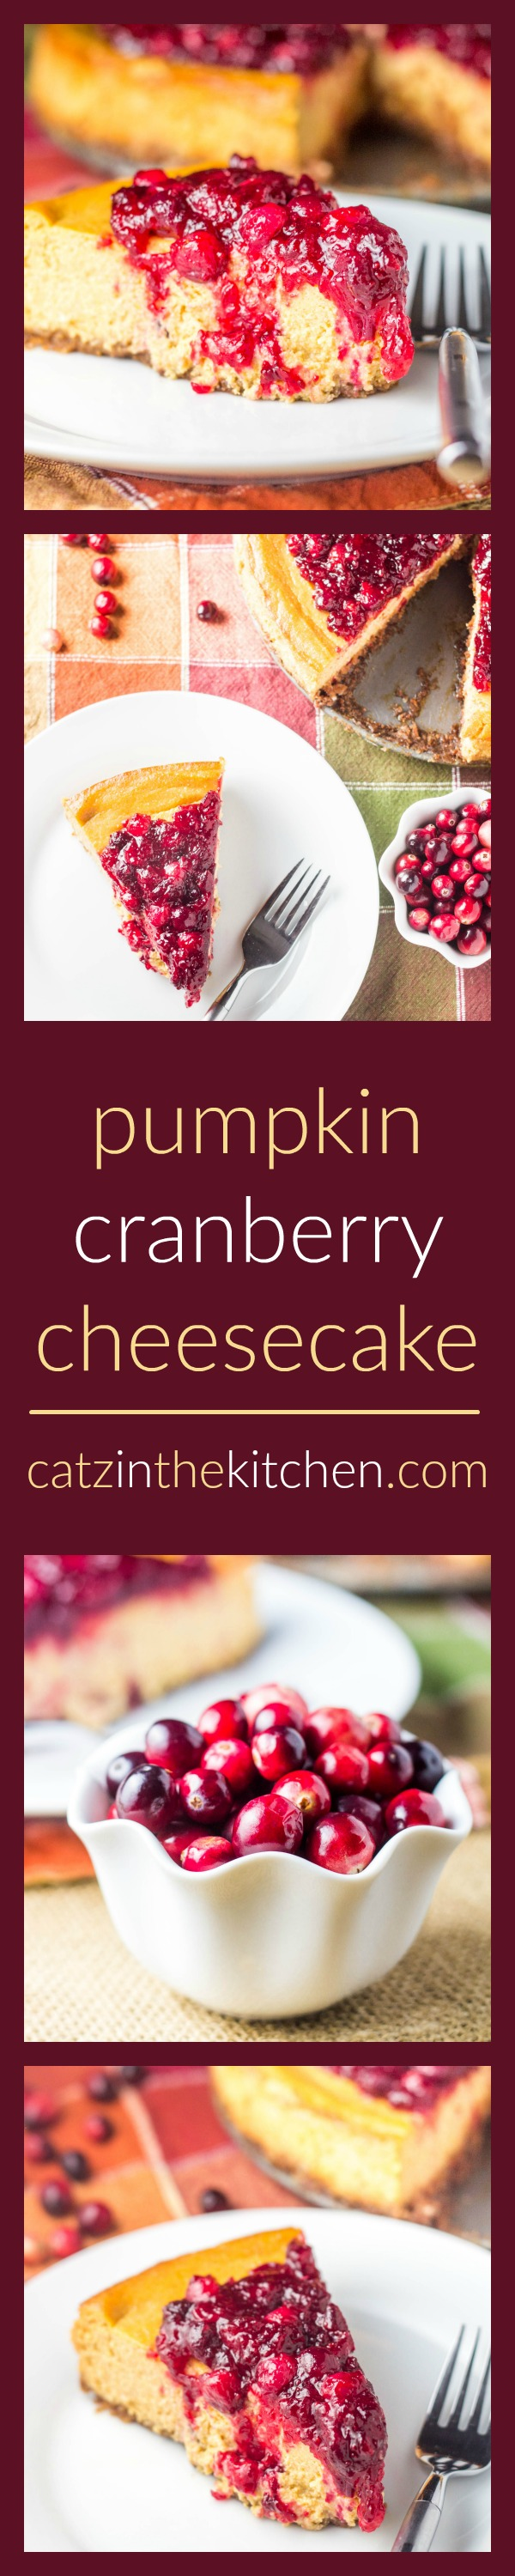 Pumpkin Cranberry Cheesecake | Catz in the Kitchen | catzinthekitchen.com | #dessert #pie #cranberries #Thanksgiving